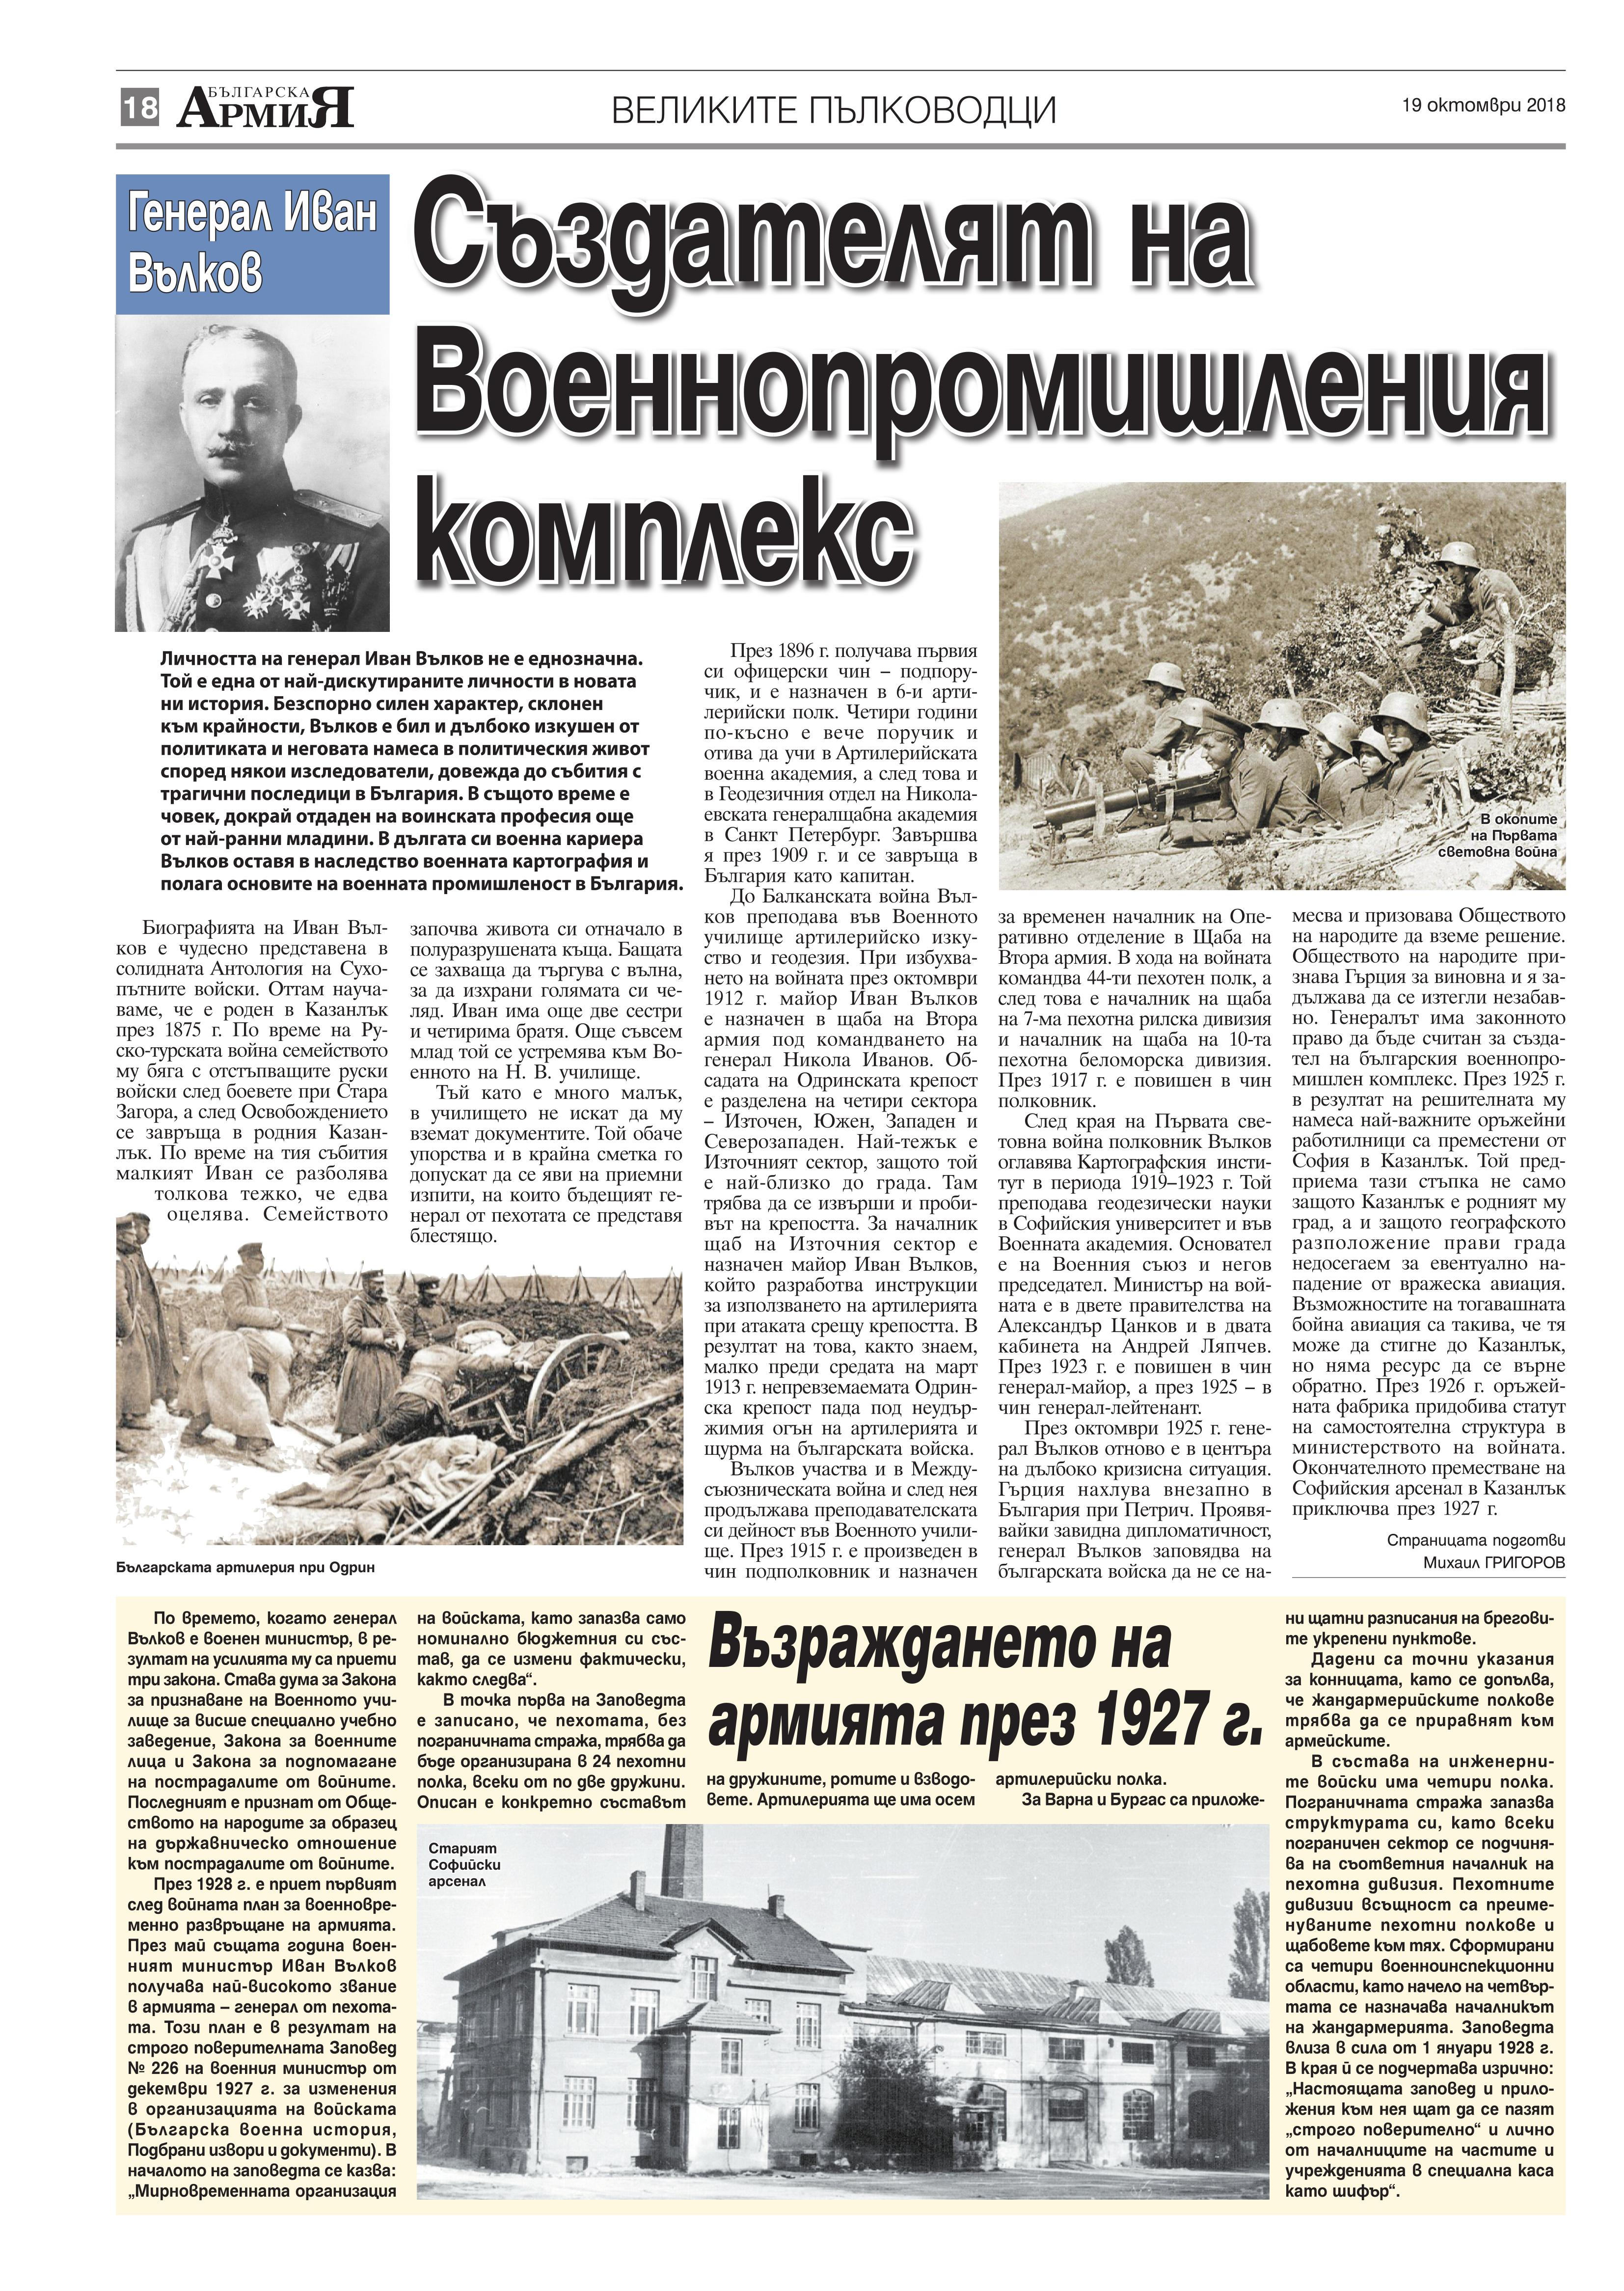 https://armymedia.bg/wp-content/uploads/2015/06/18.page1_-70.jpg